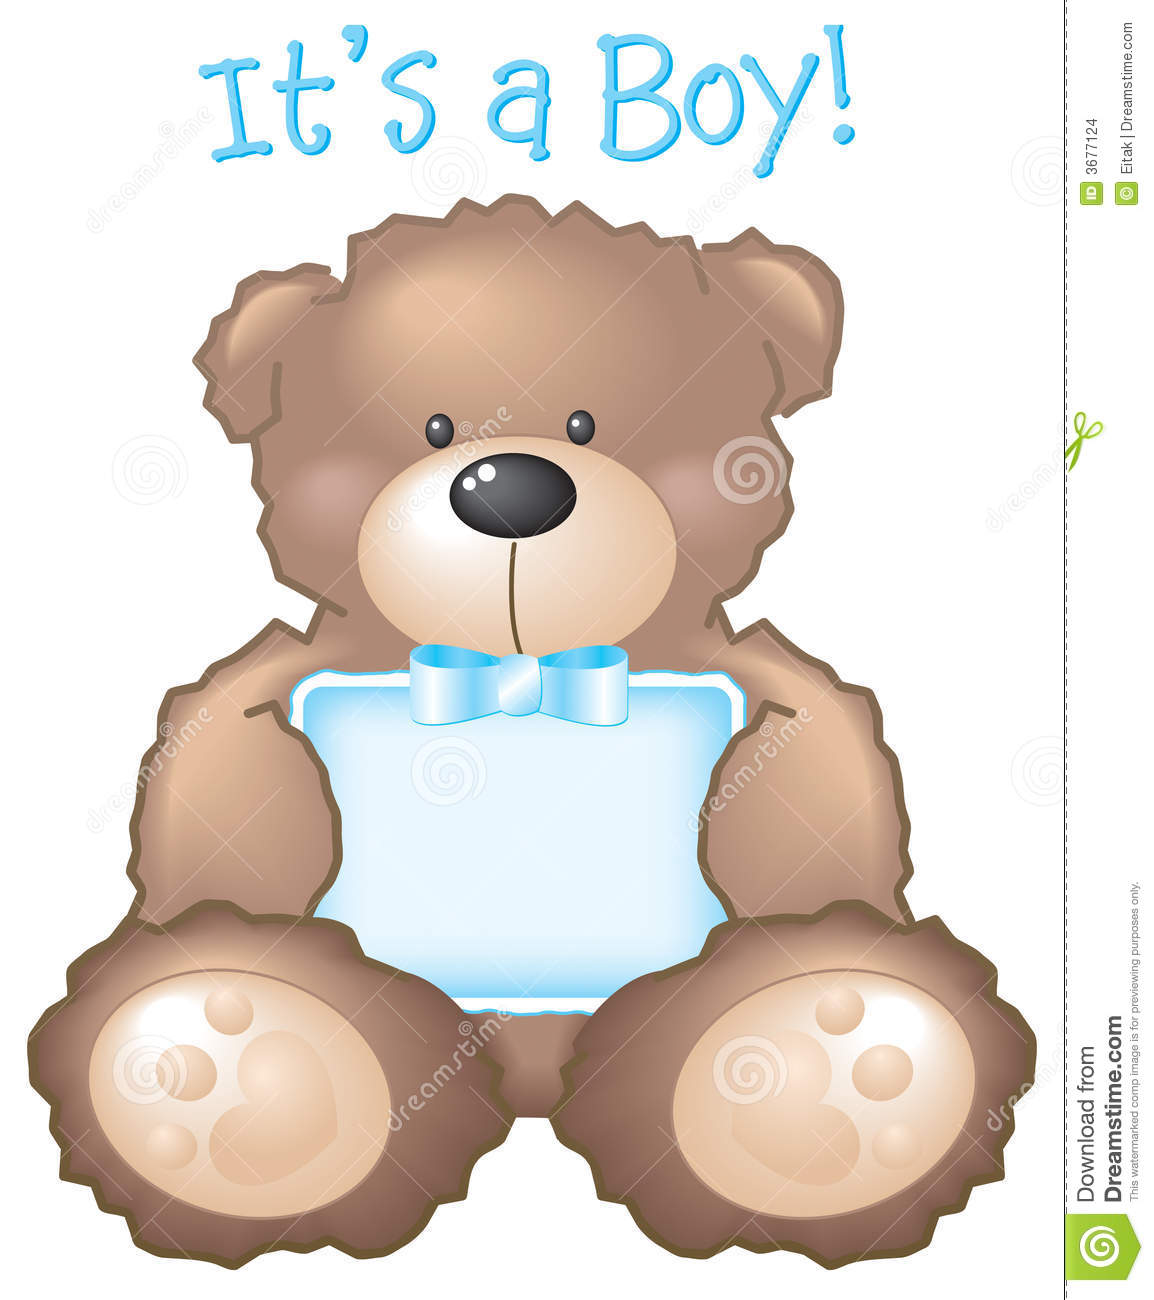 Baby boy teddy bear clip art - photo#7